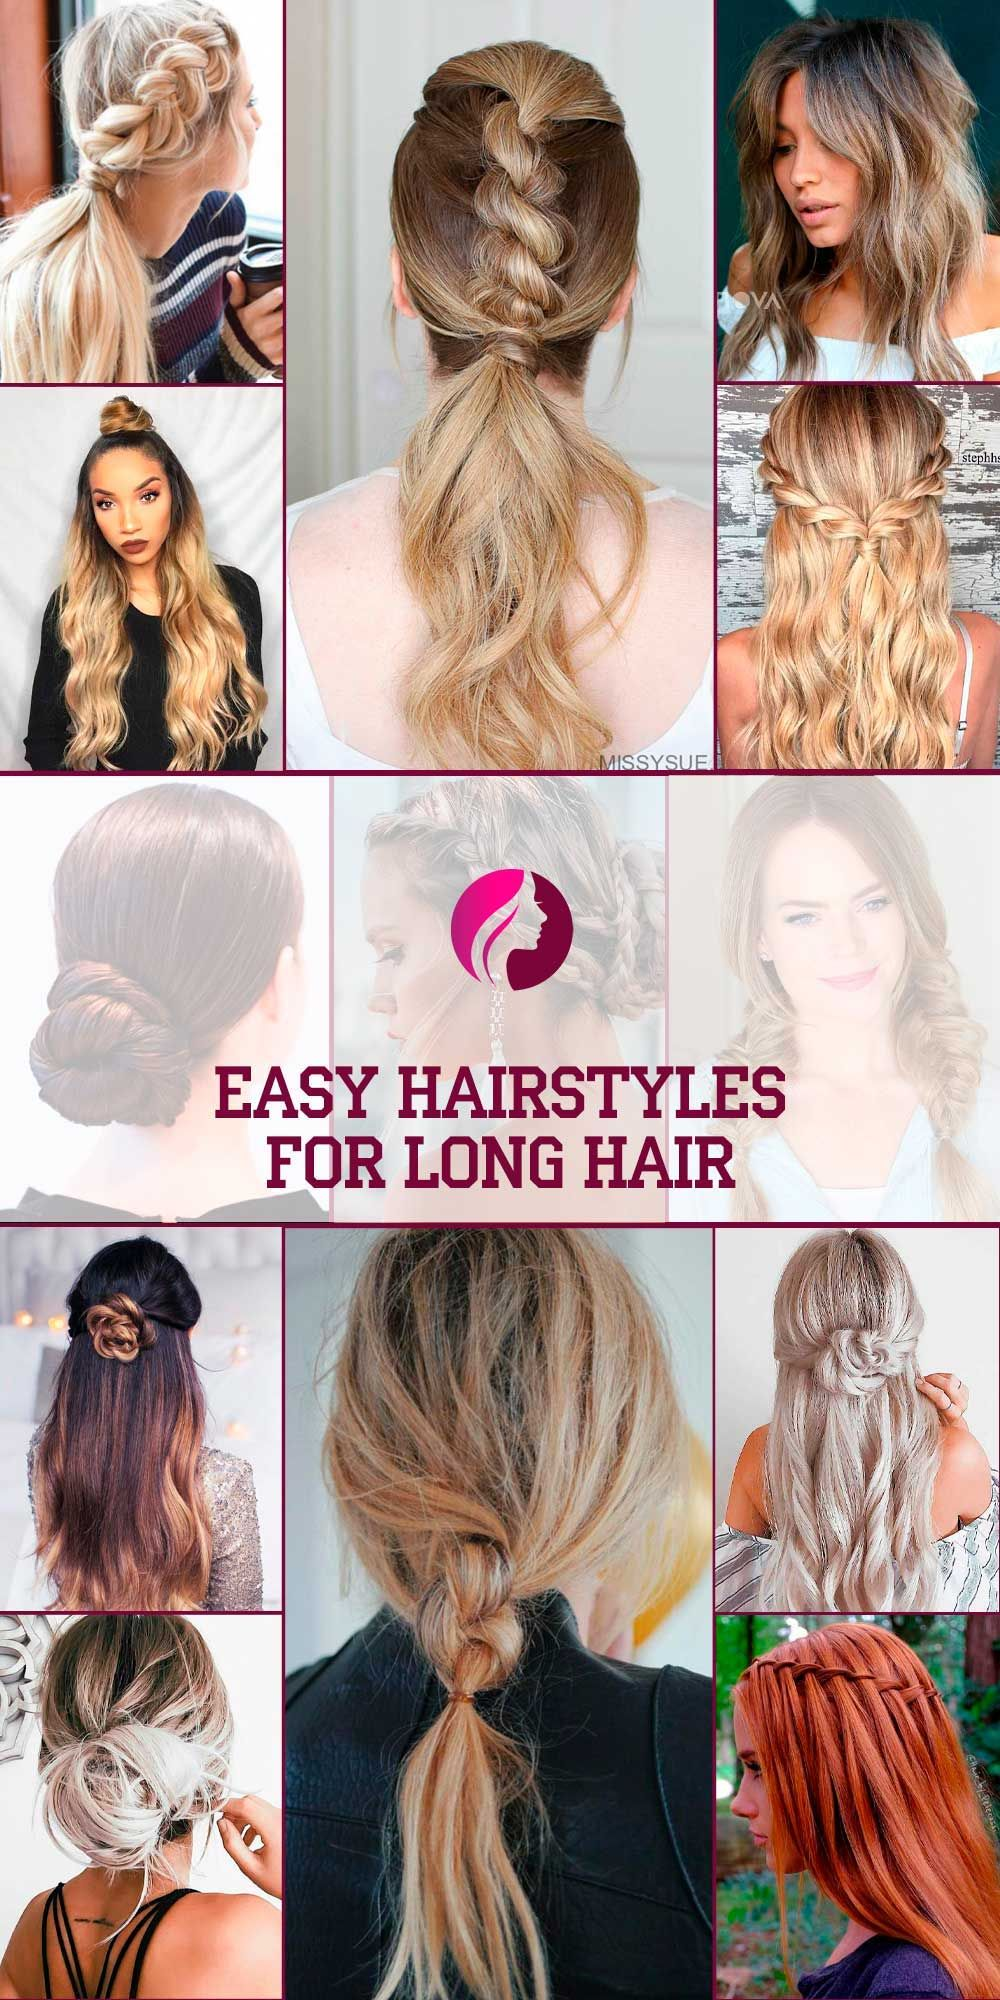 28 Easy Hairstyles For Long Hair Make New Look Easy Hairstyles For Long Hair Easy Hairstyles Long Hair Styles